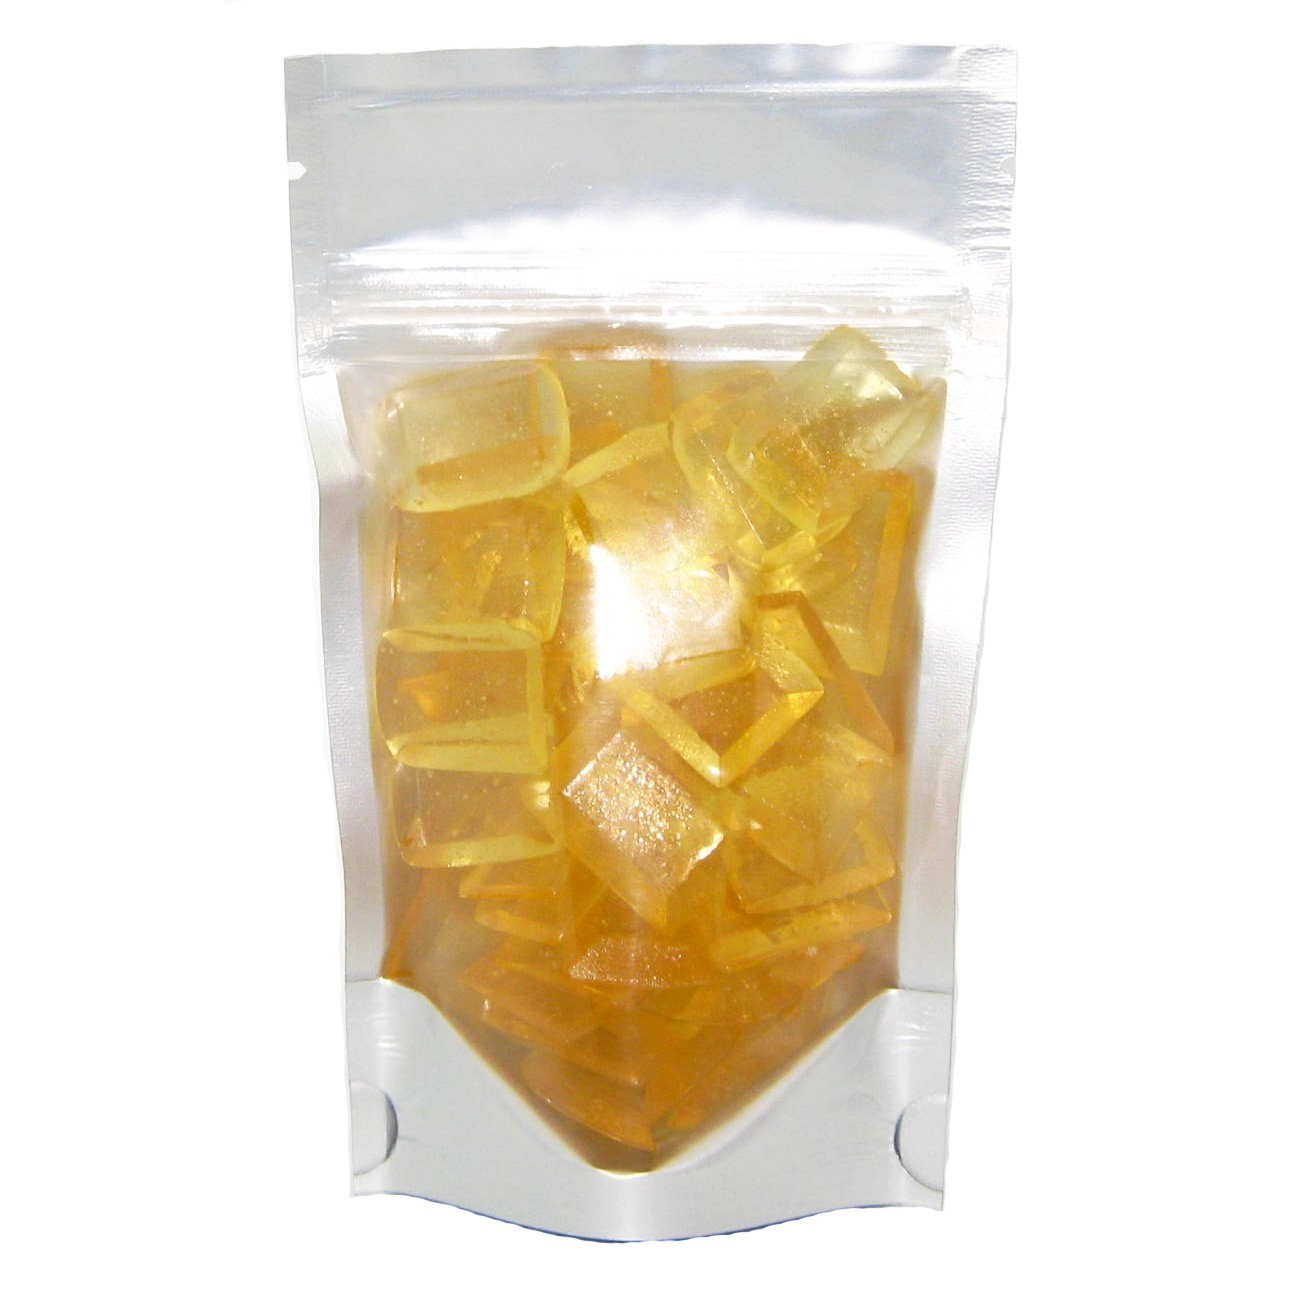 "Caramel   ""Naturally"" Barley - Jewels 2 oz. Bag"